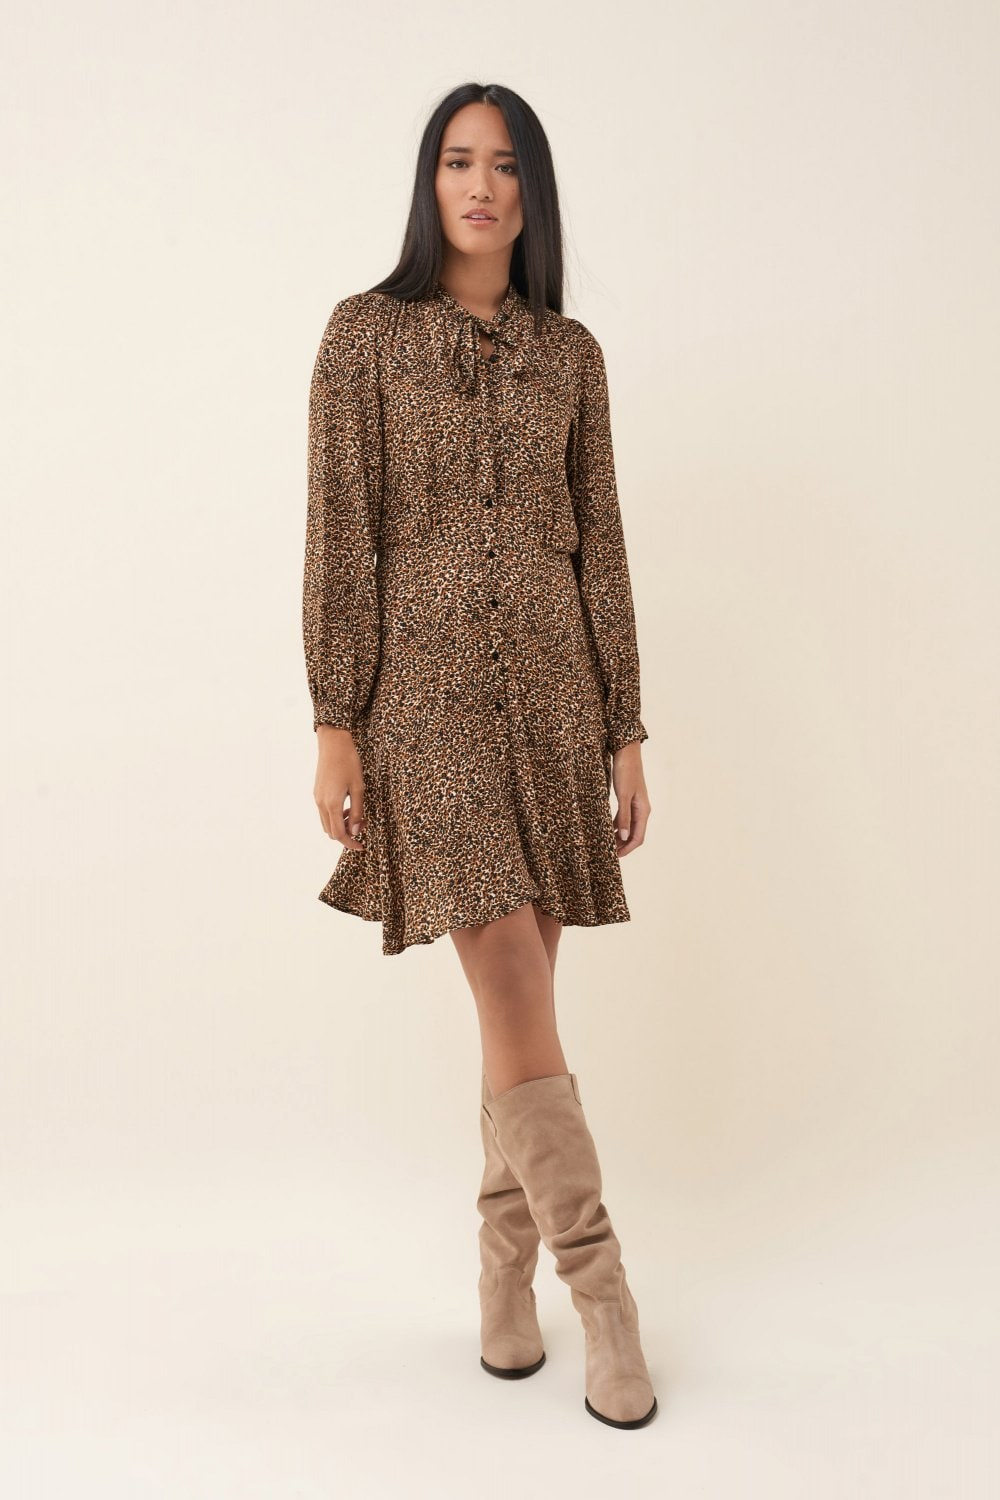 Leopard print dress - Salsa